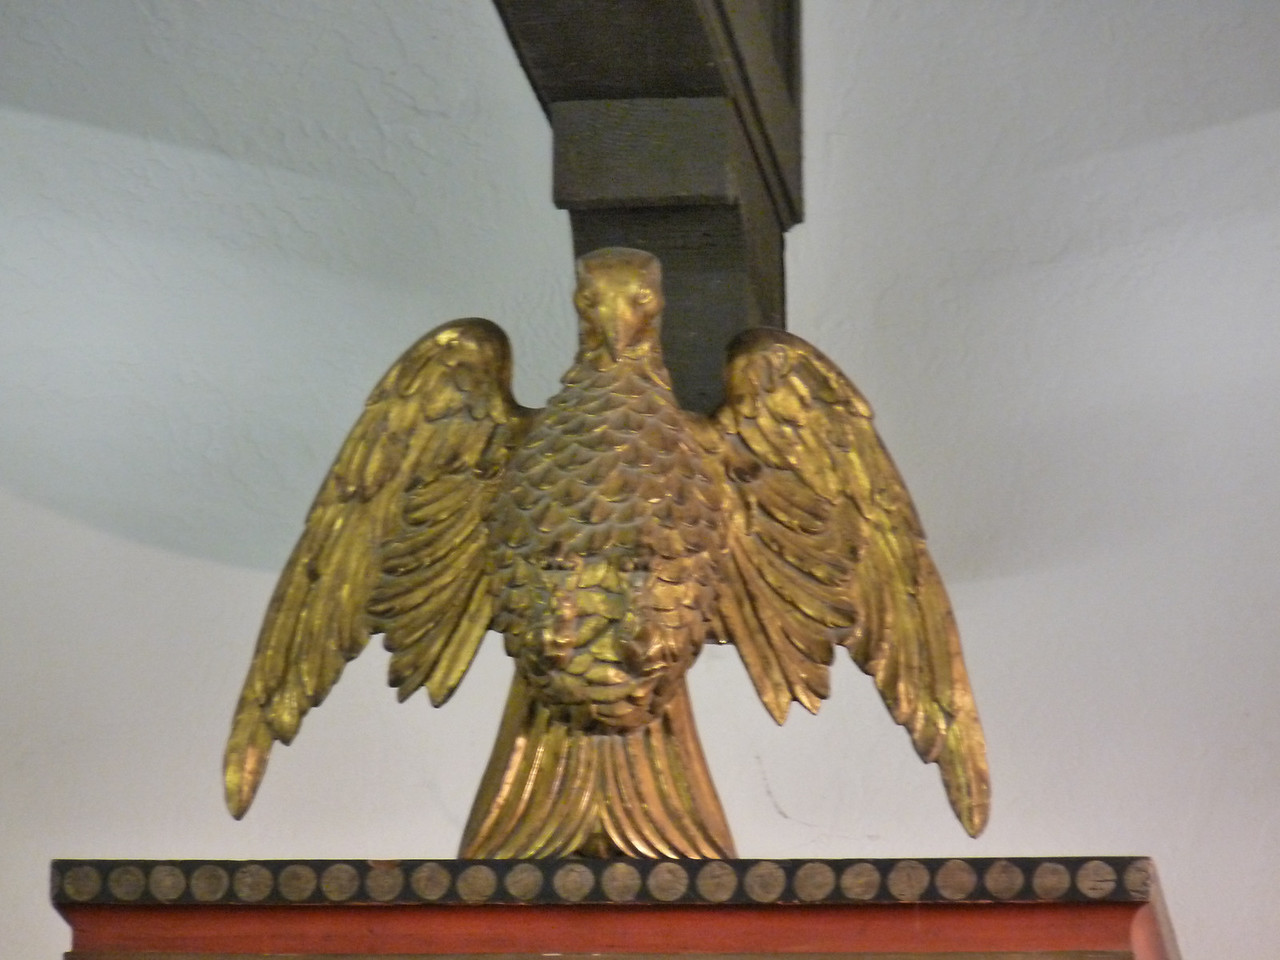 the eagle above the Alter, representing the resurrection   (hhmmm, I always thought that was the Phoenix.  Oh!  Different religion/culture!)